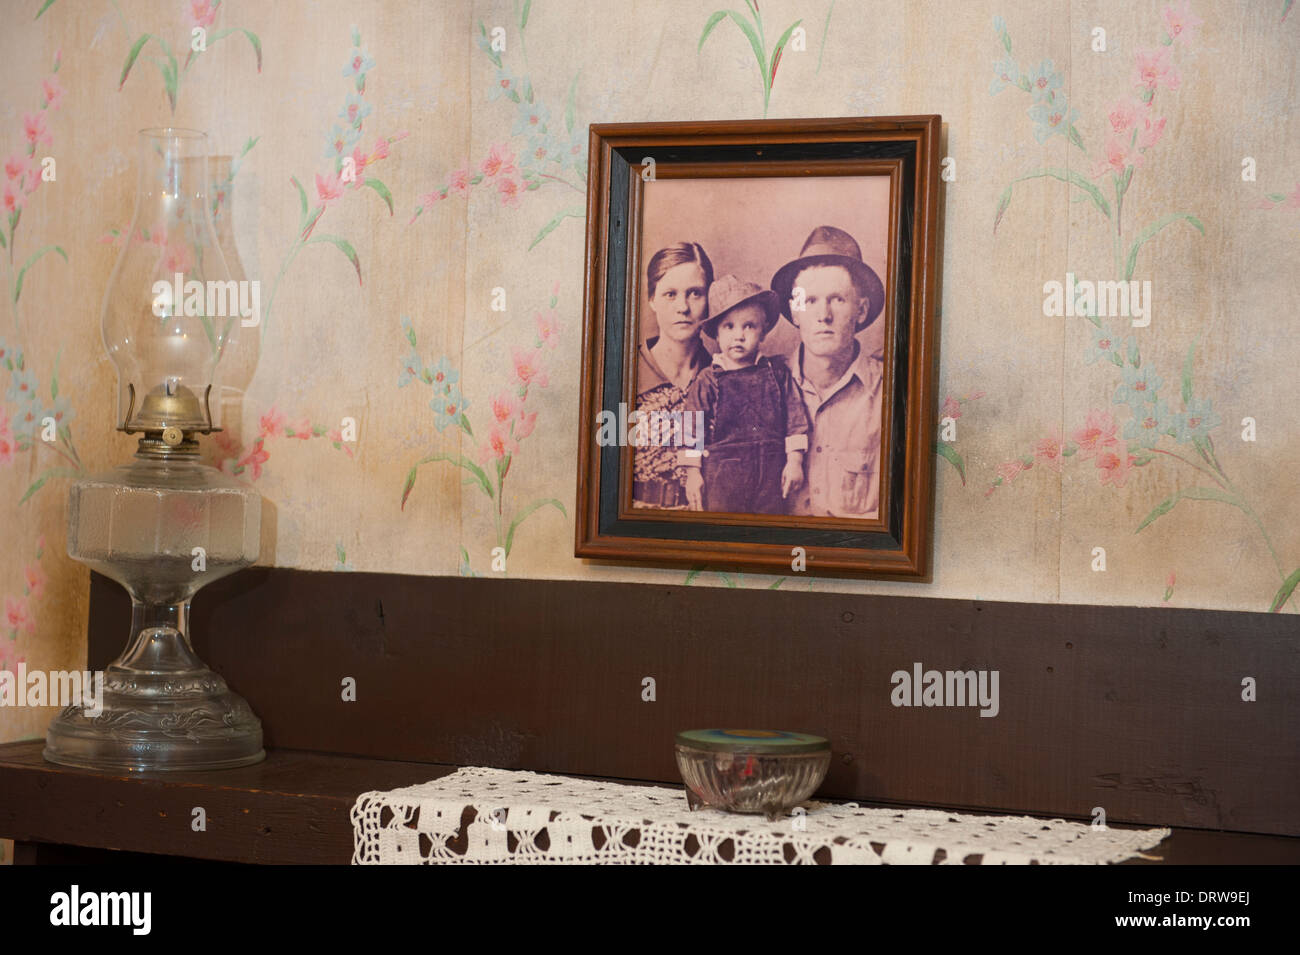 USA Mississippi MS Miss Tupelo Elvis Presley birthplace home birth - family portrait in the bedroom - Stock Image